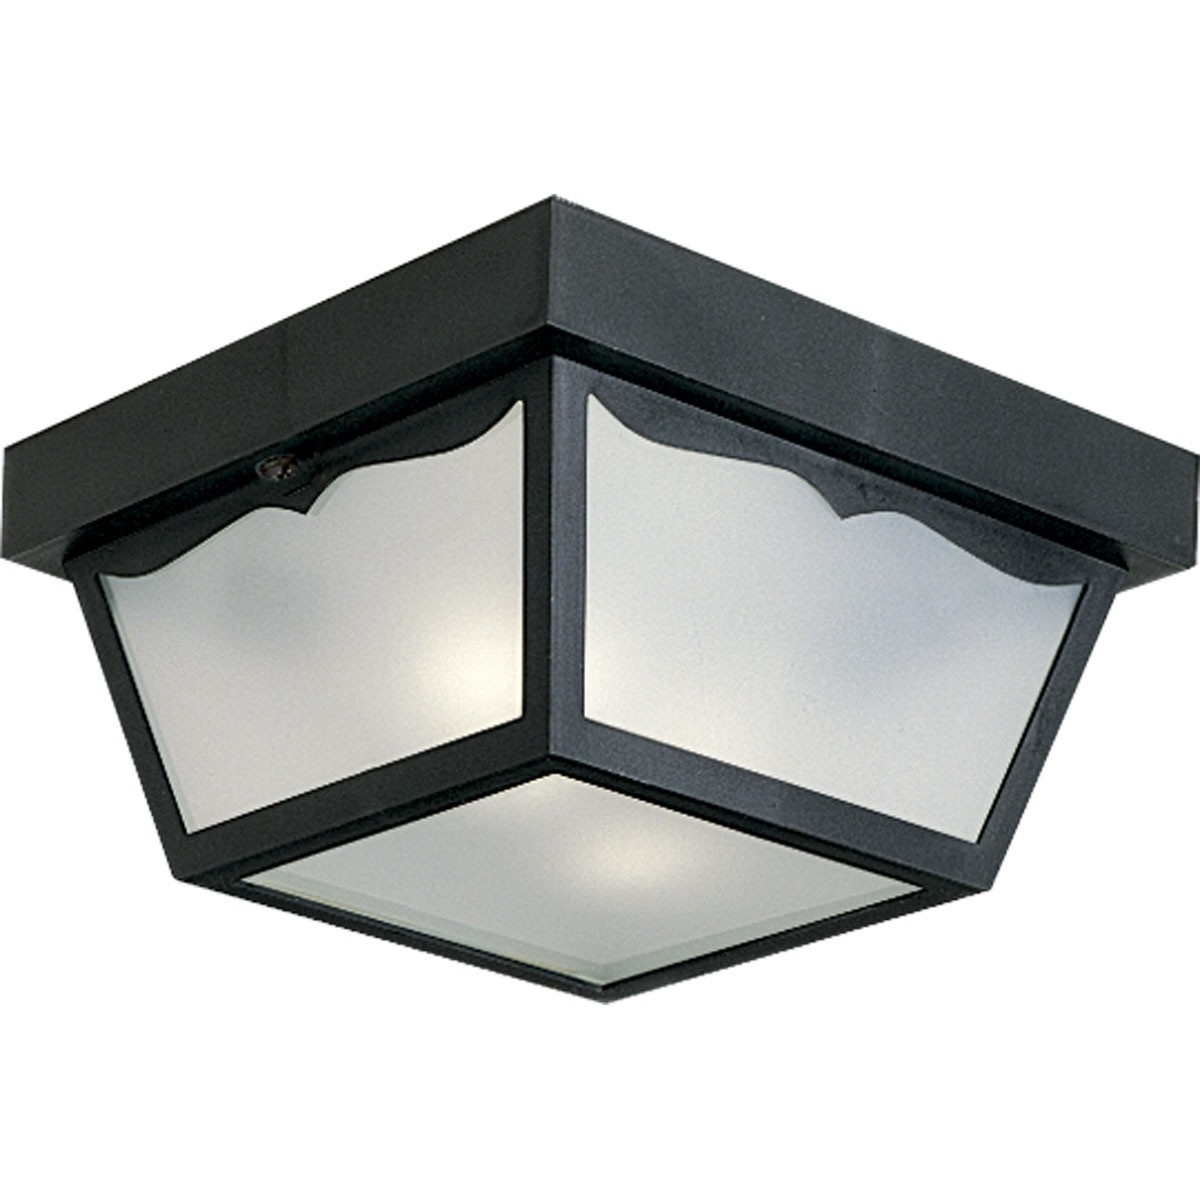 2019 60W Outdoor Flush Mount Non Metallic Ceiling Light – Progress With Regard To Outdoor Motion Sensor Ceiling Mount Lights (View 1 of 20)